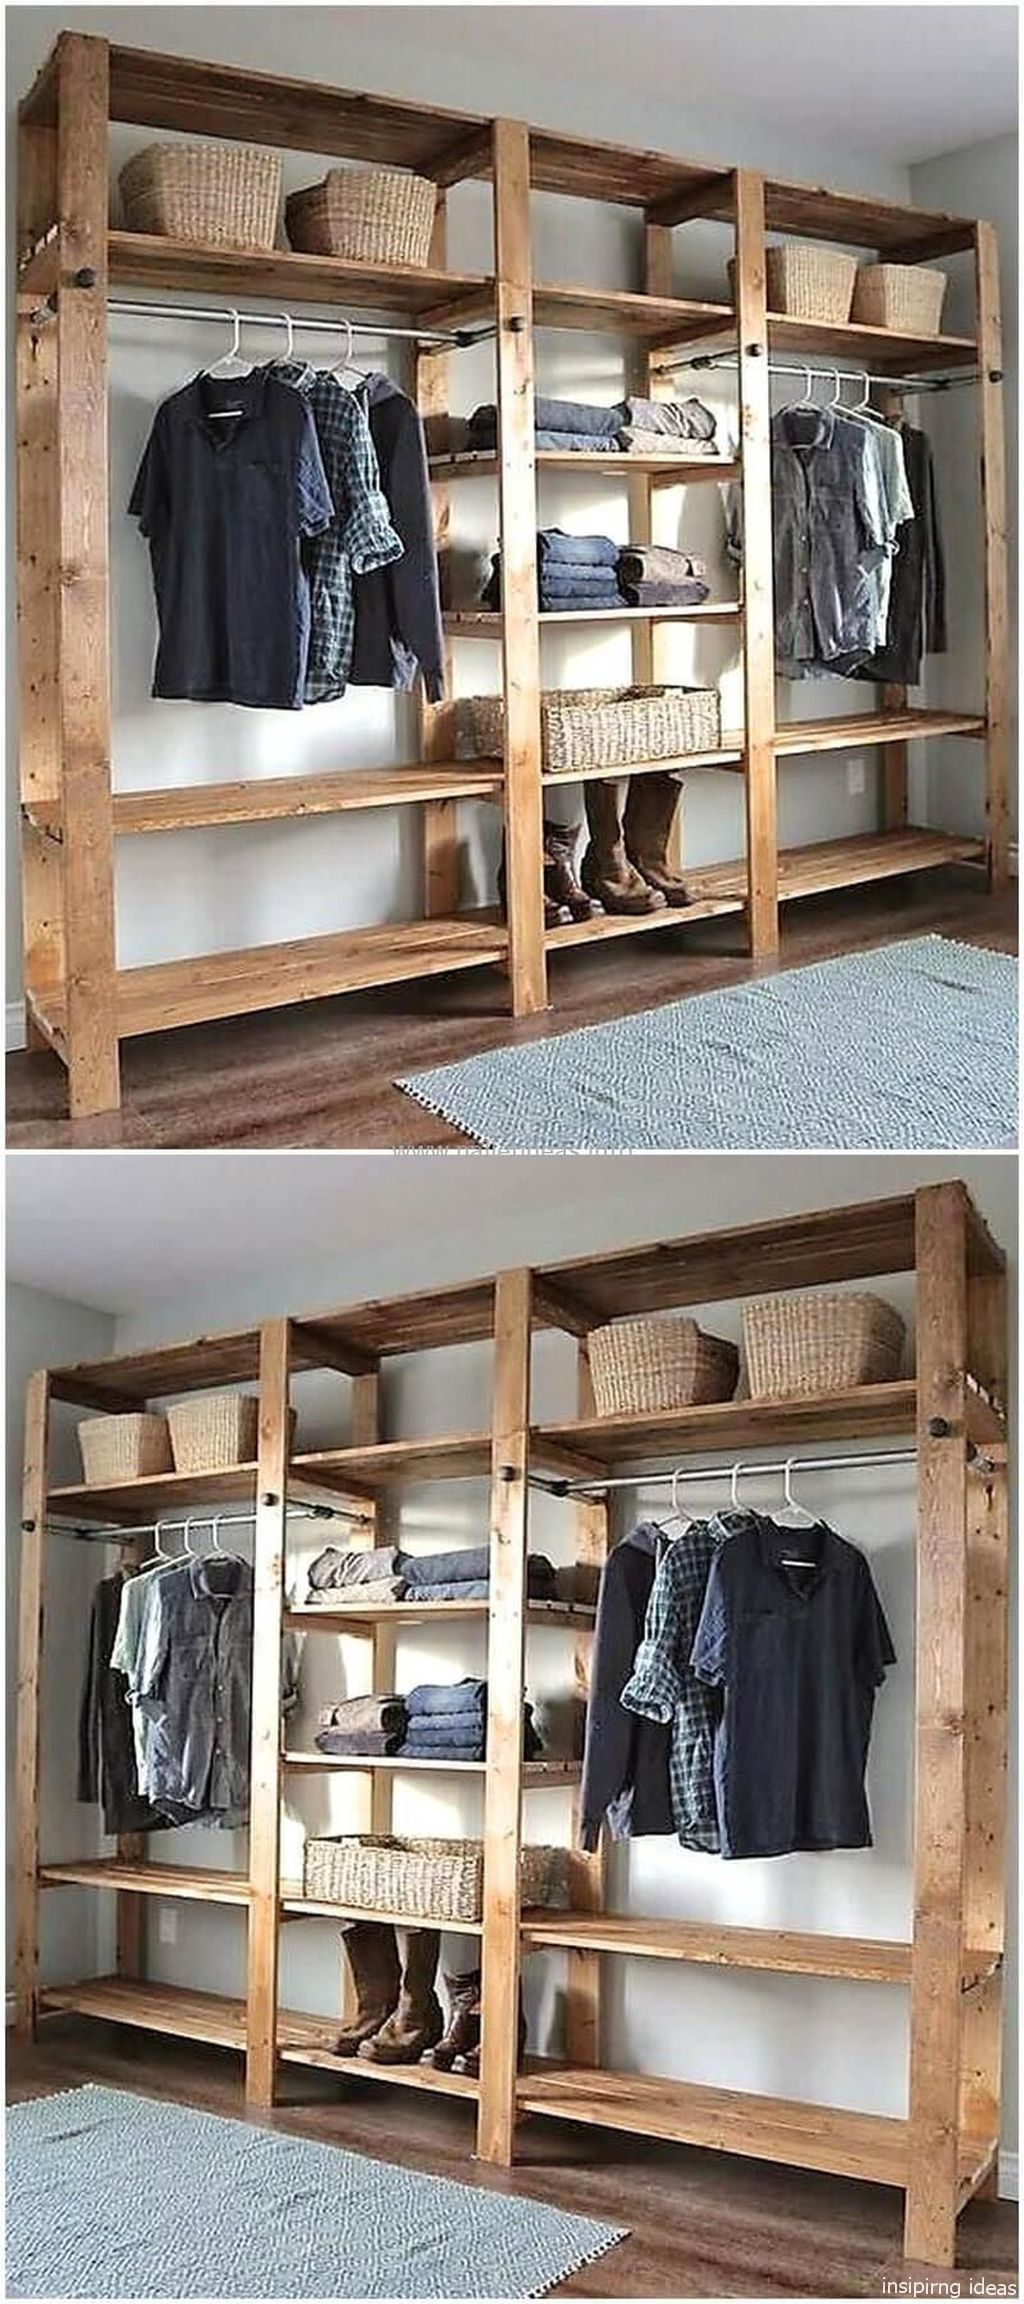 47 clever diy closet design ideas | Clever diy, Closet designs and ...